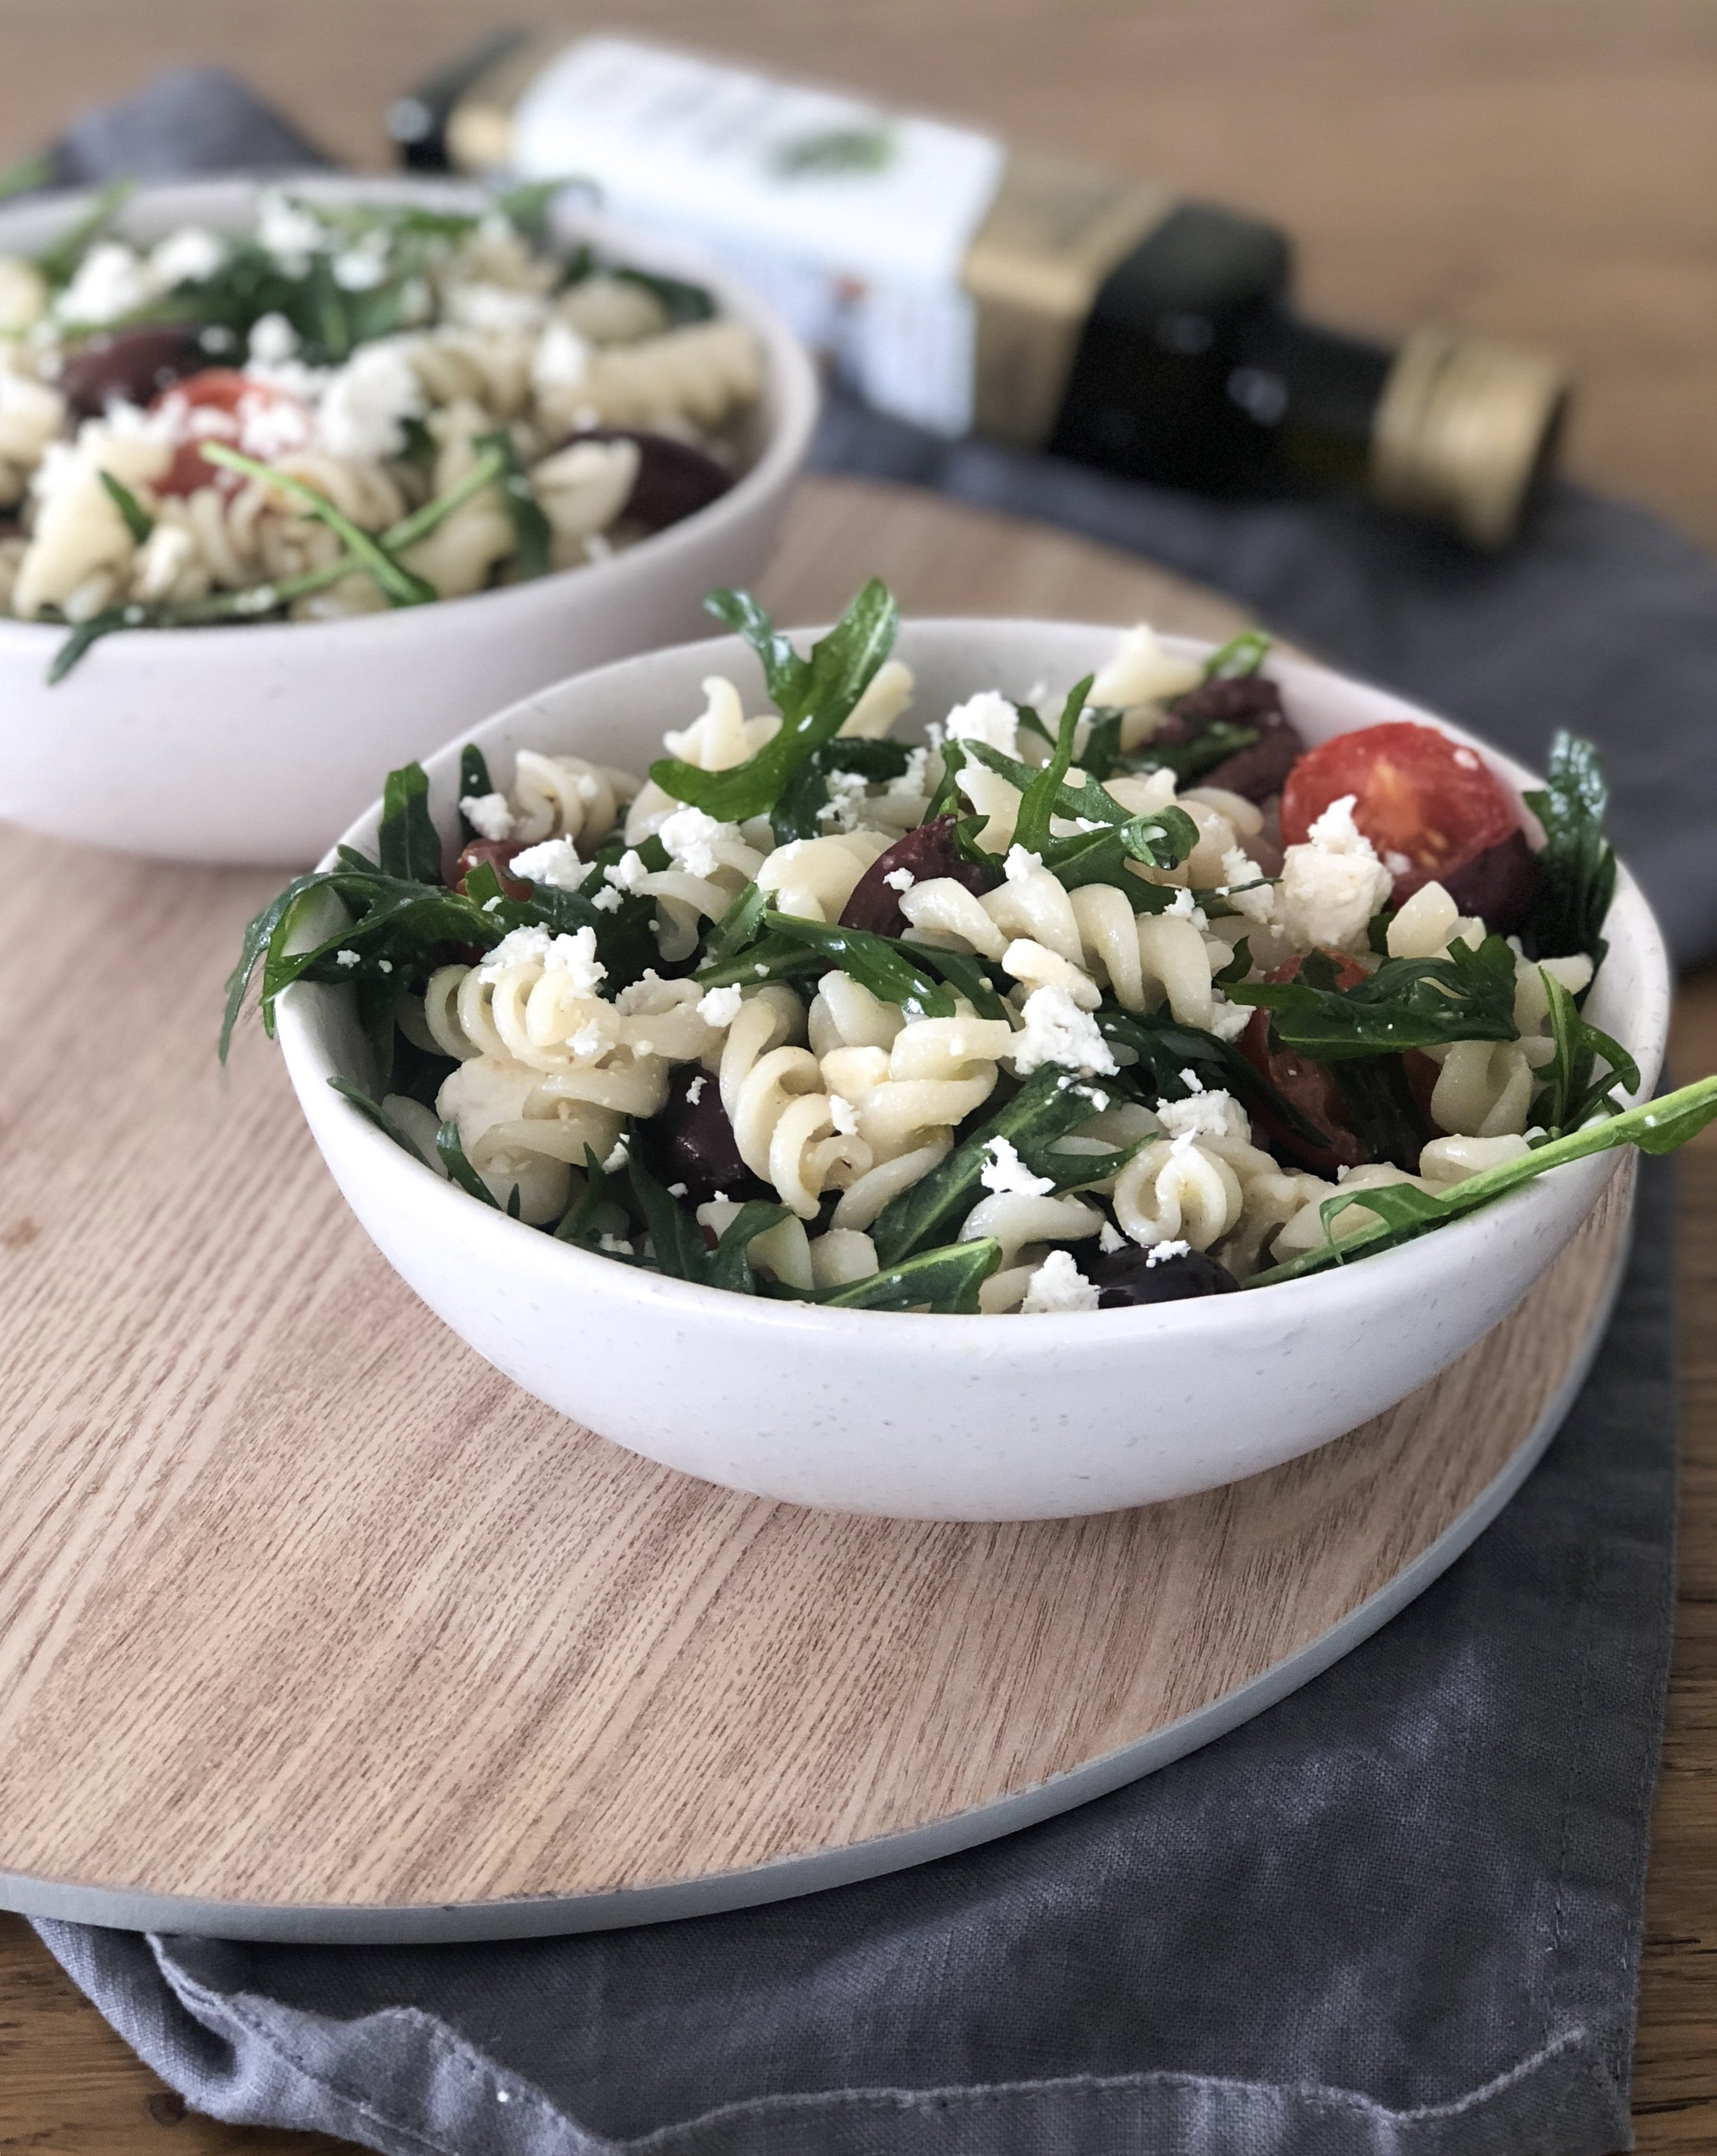 Low FODMAP gluten free pasta salad with olives and tomatoes